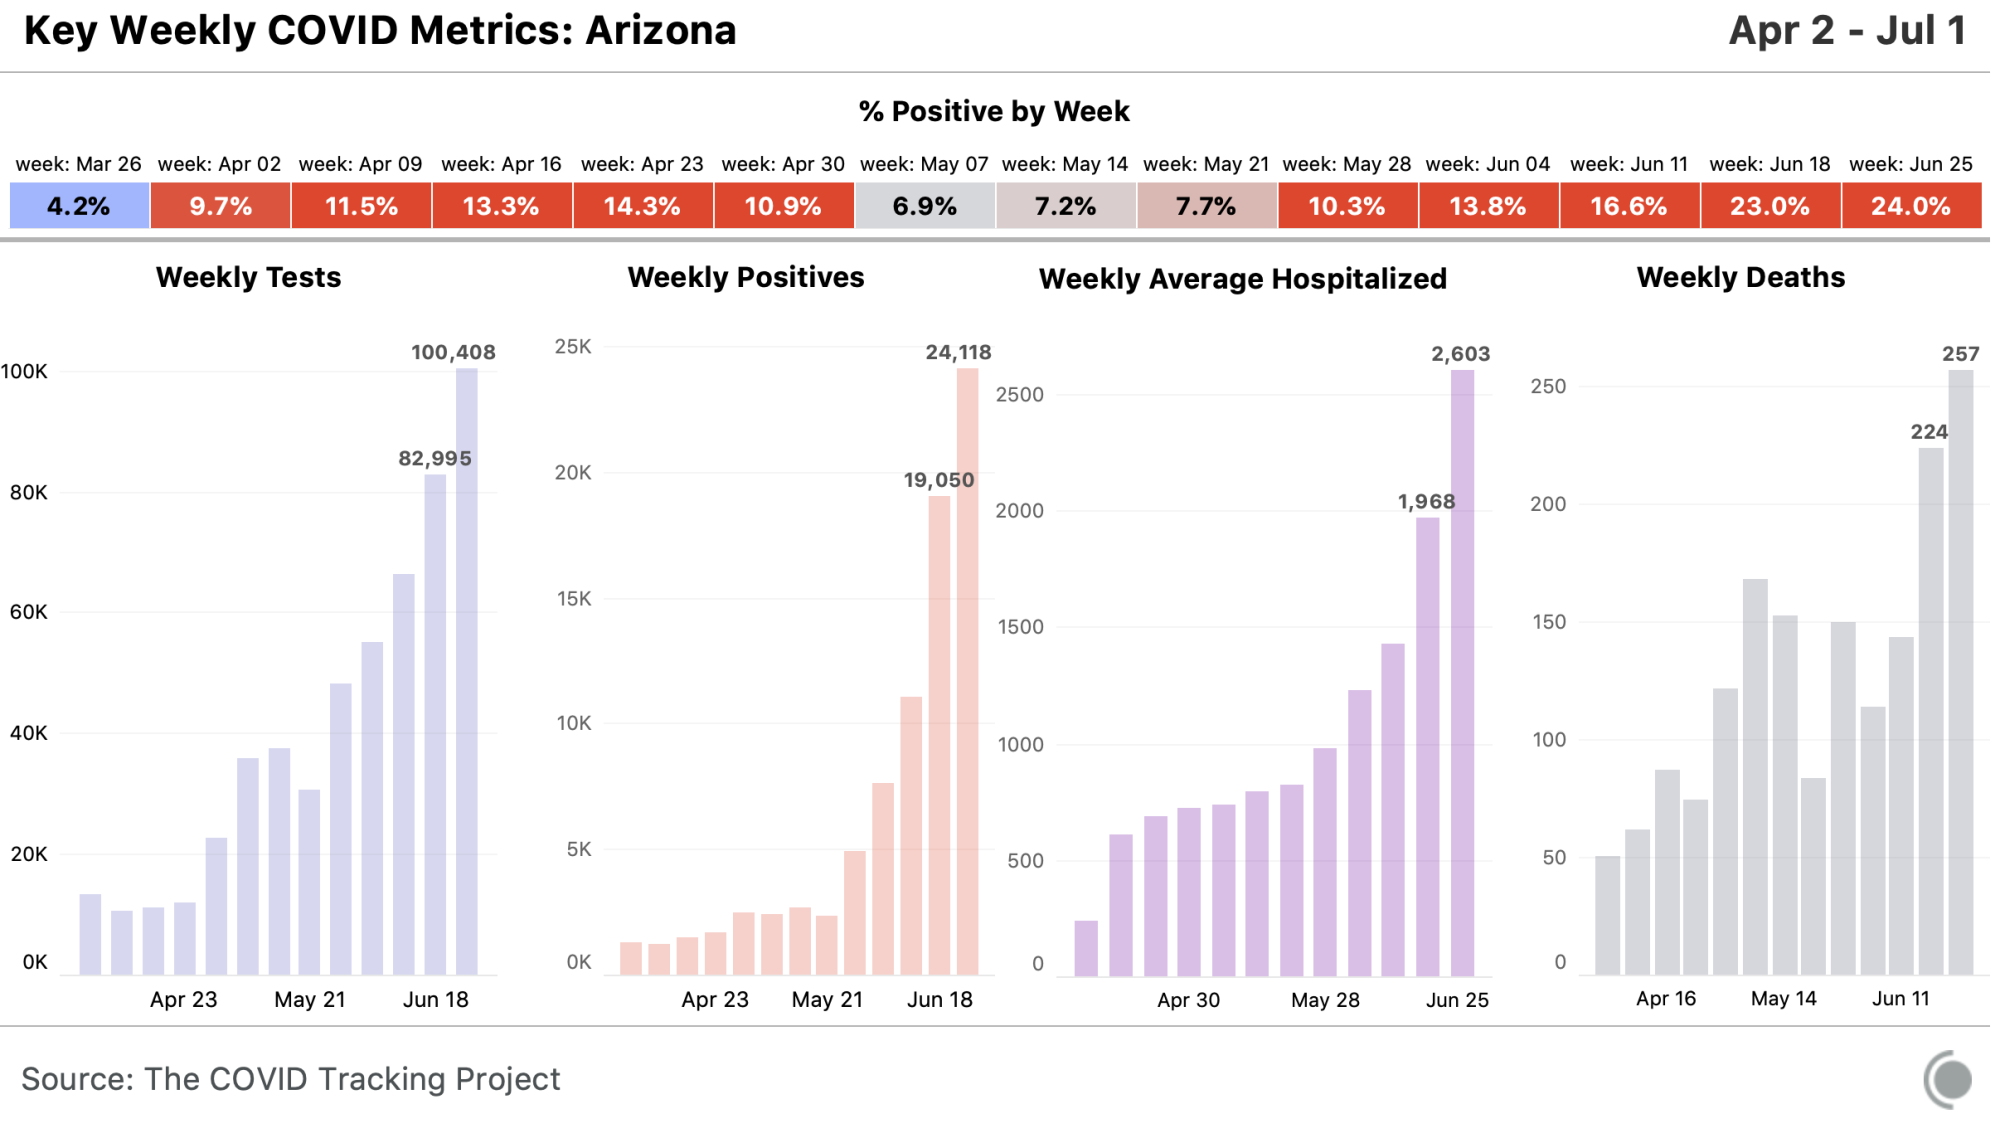 State chart for Arizona, all metrics available at https://covidtracking.com/data/state/arizona